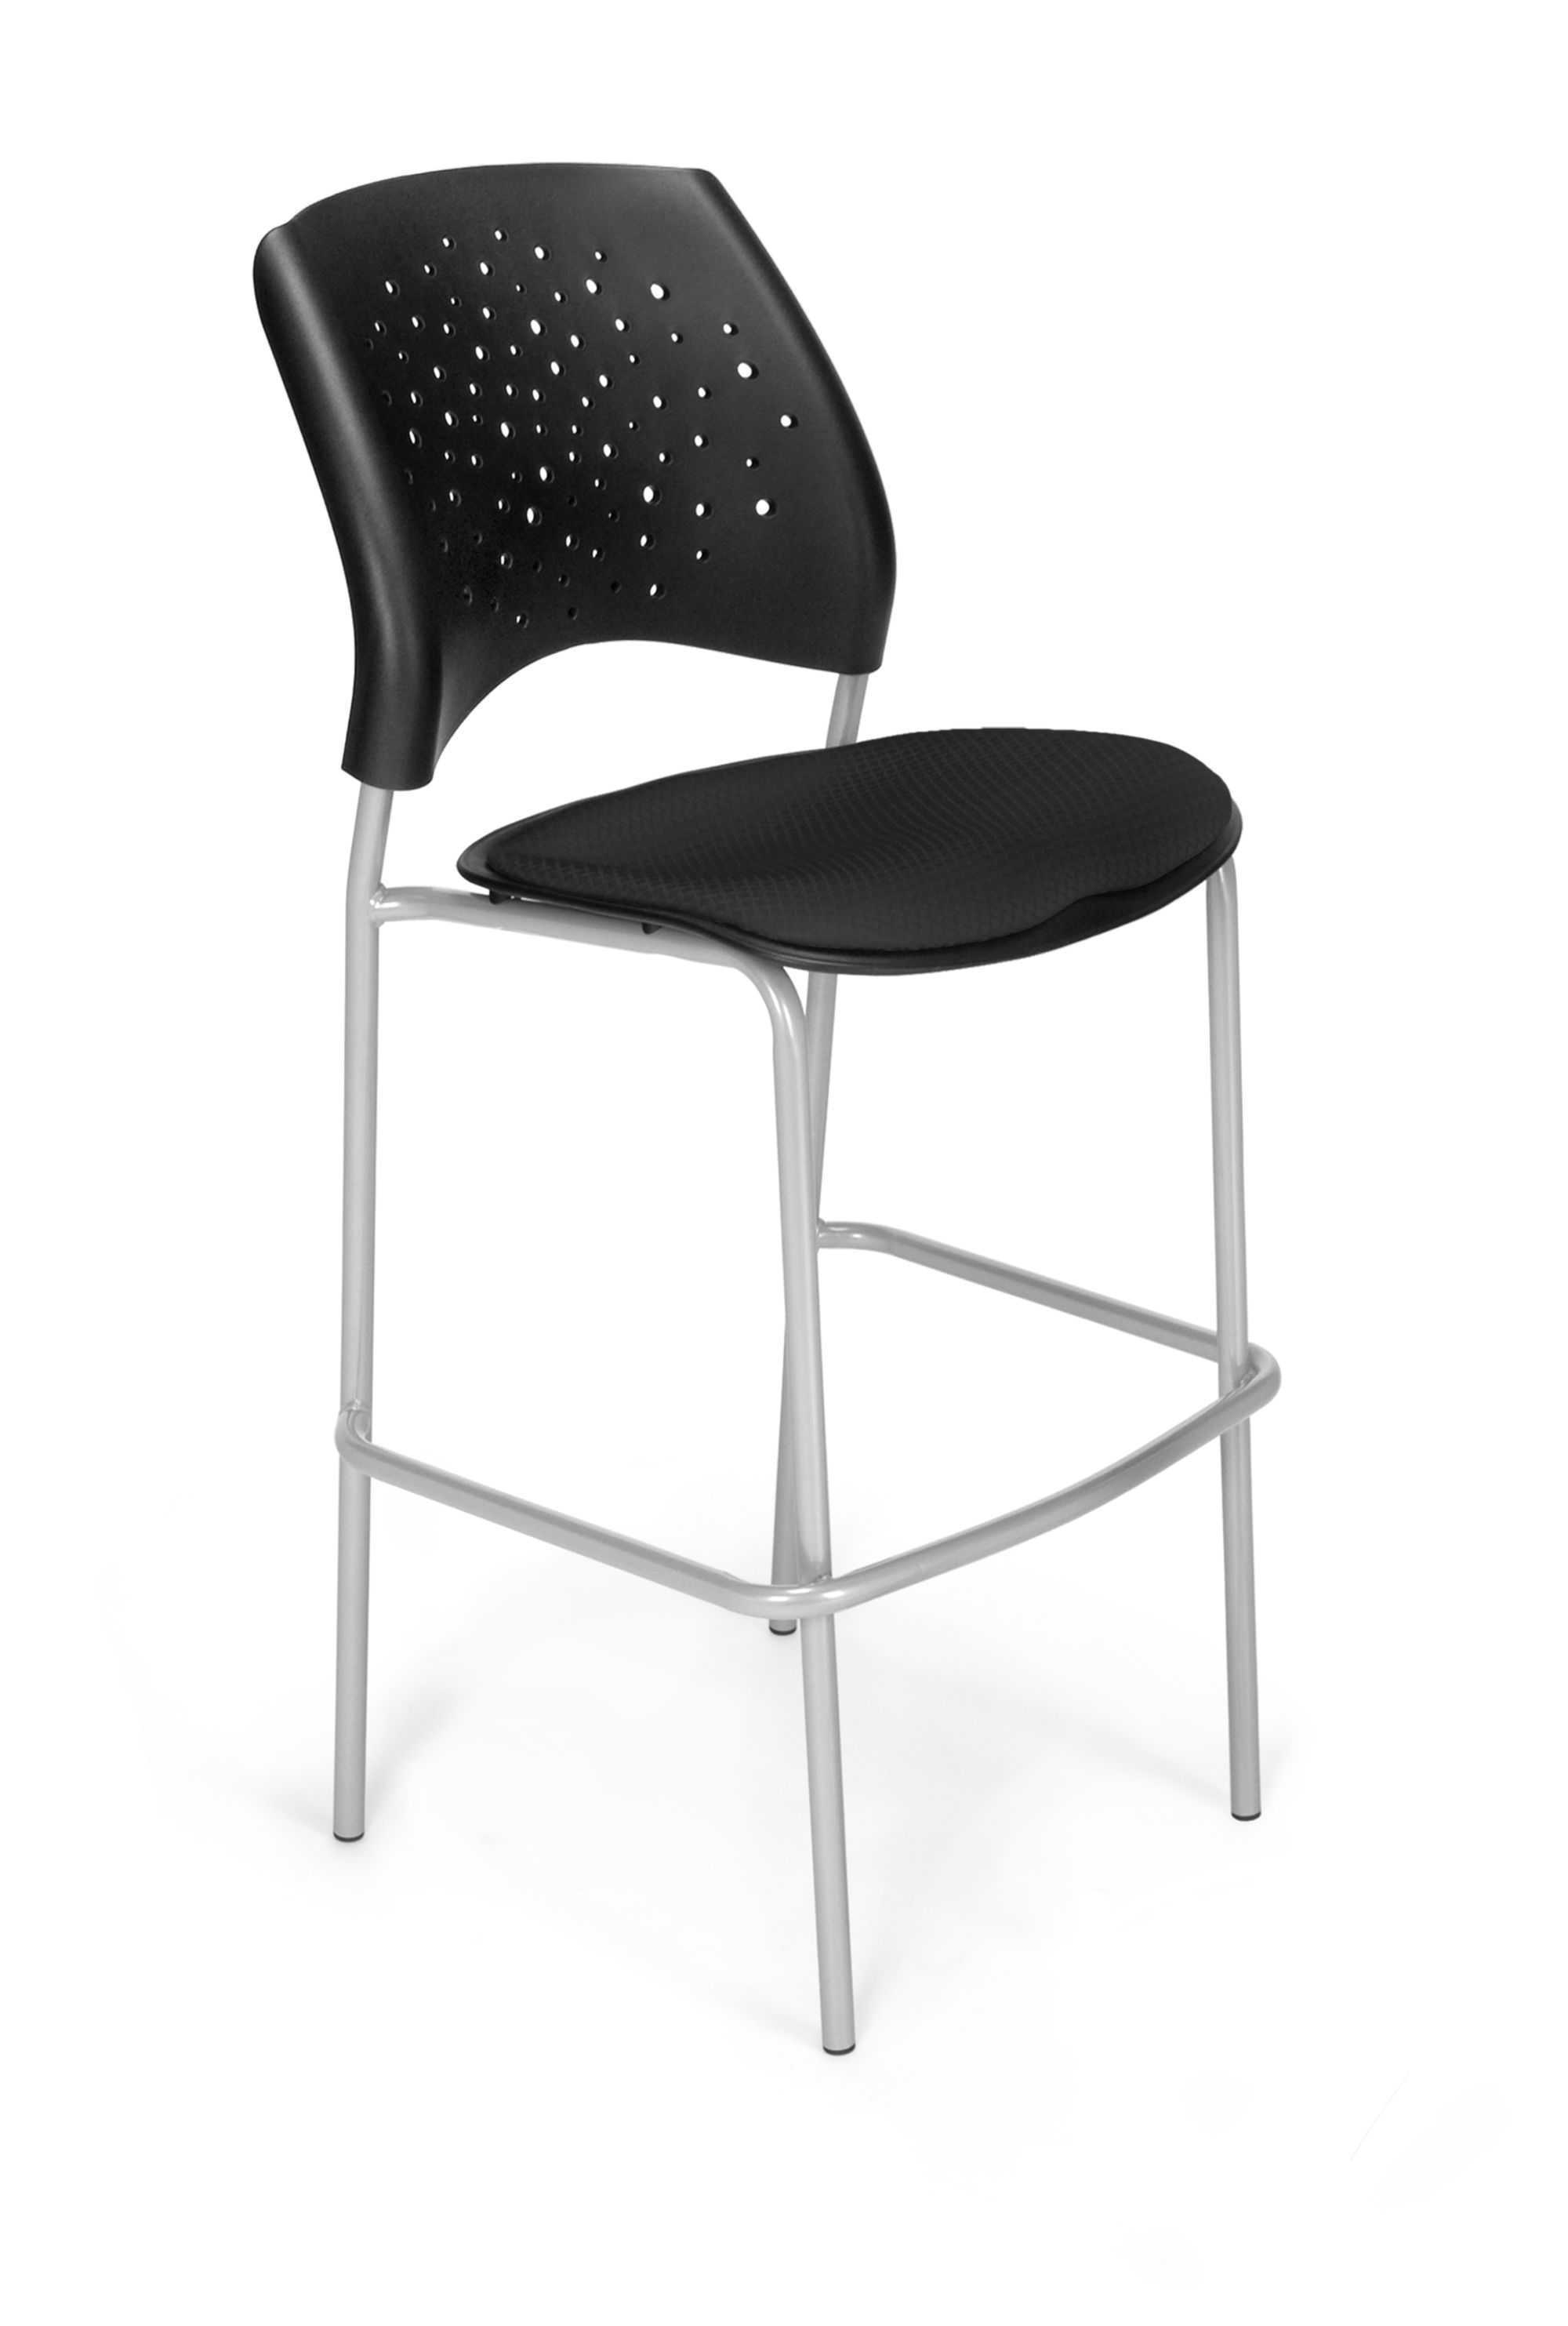 OFM Stars Series Model 328S Fabric Cafe Height Chair, Black With Silver  Base, Pack